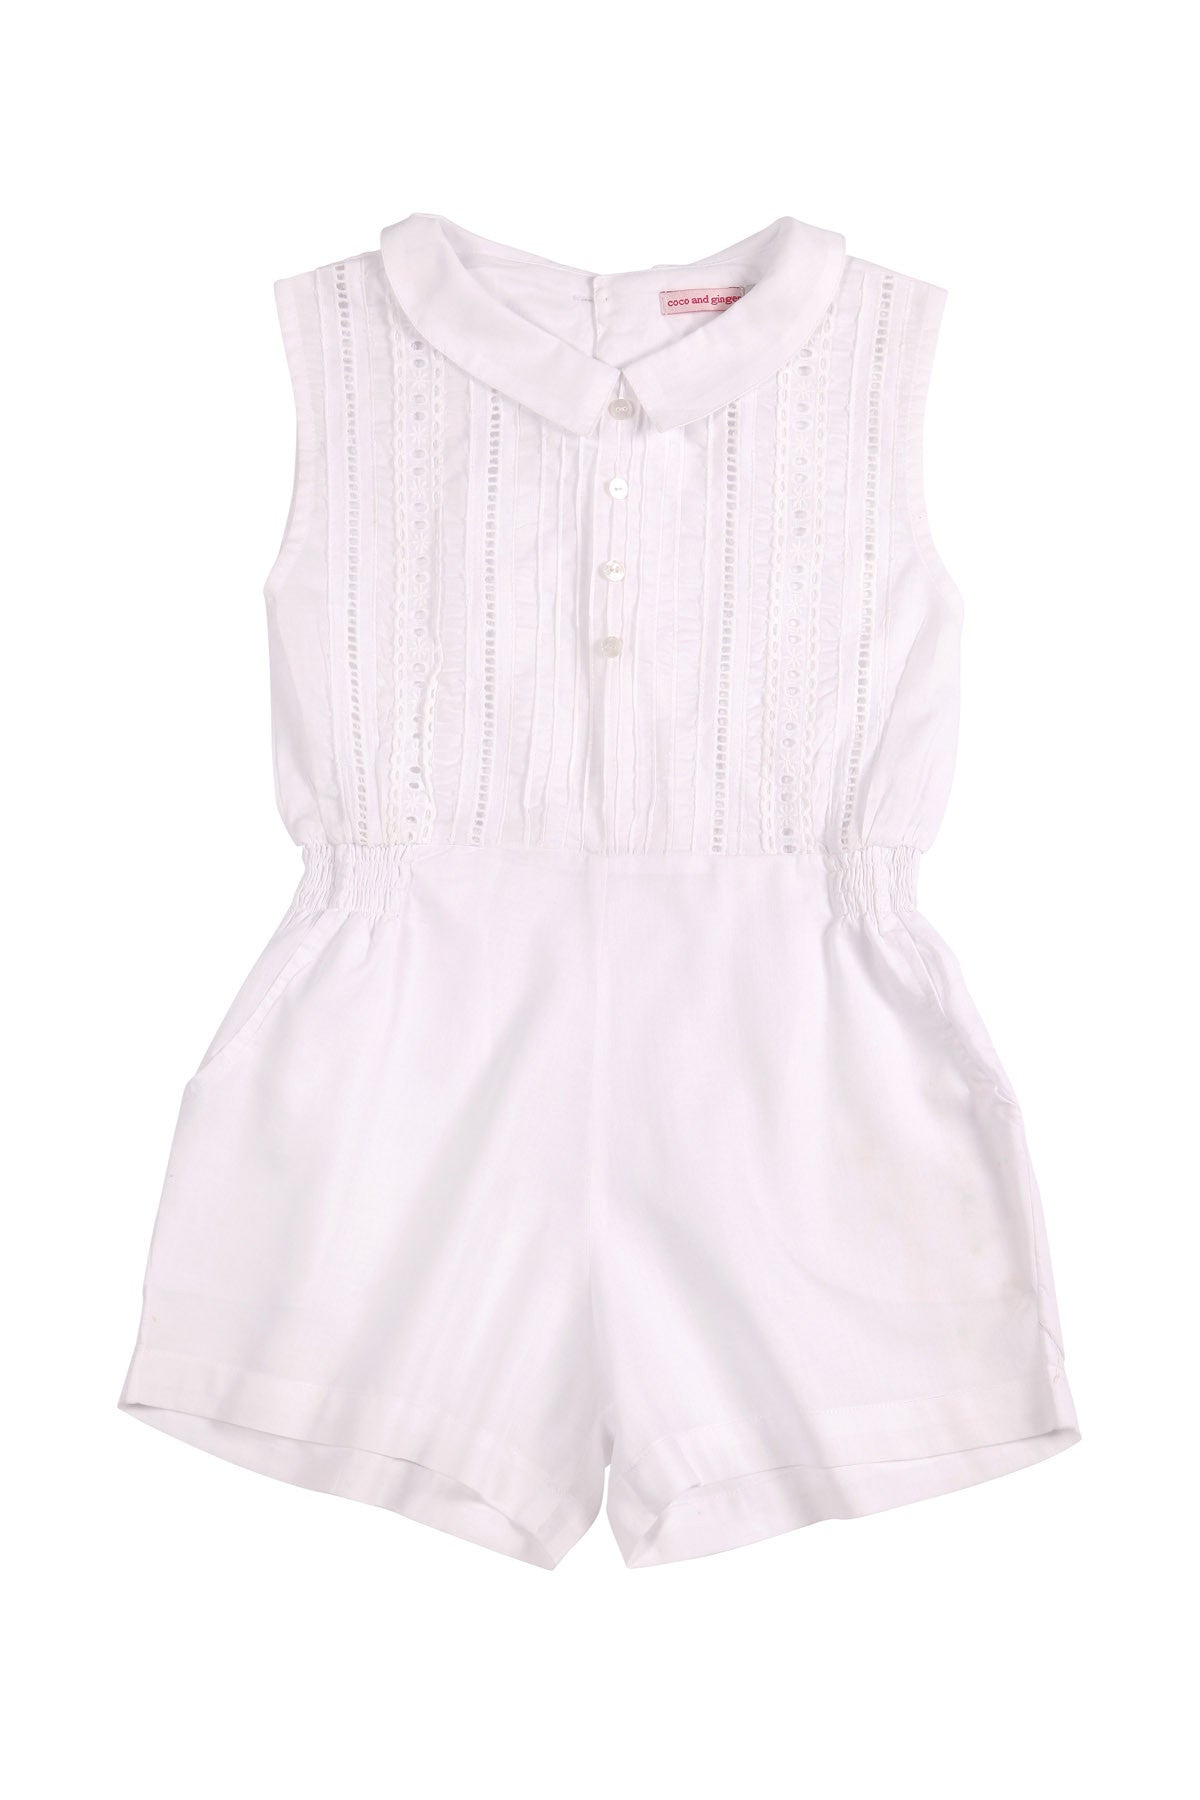 Cinnamon Playsuit White with Lace